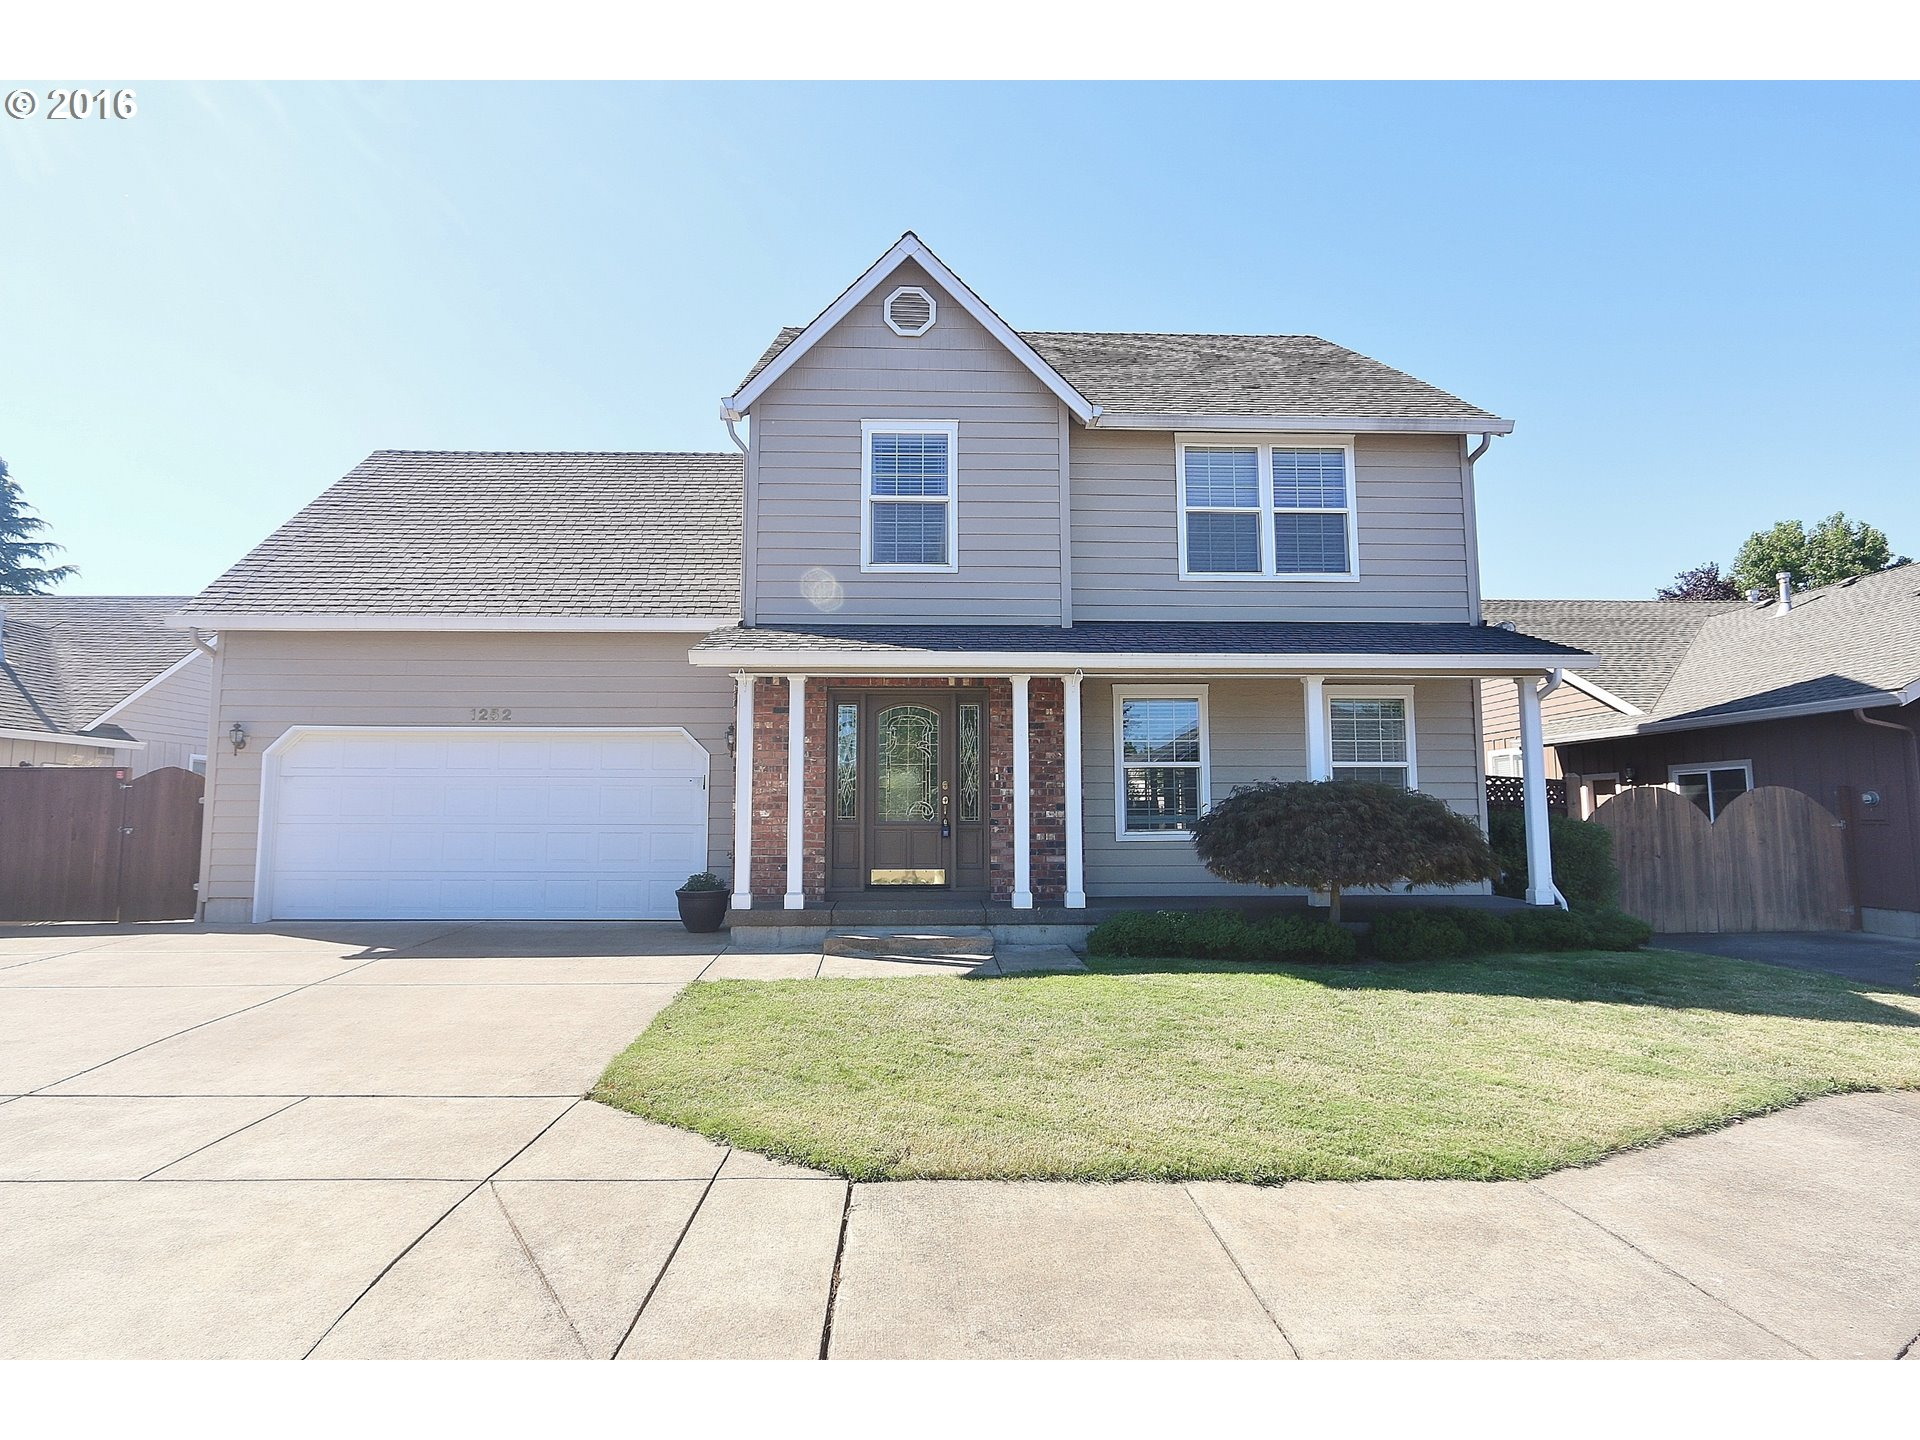 1252 WINERY LN, Eugene, OR 97404